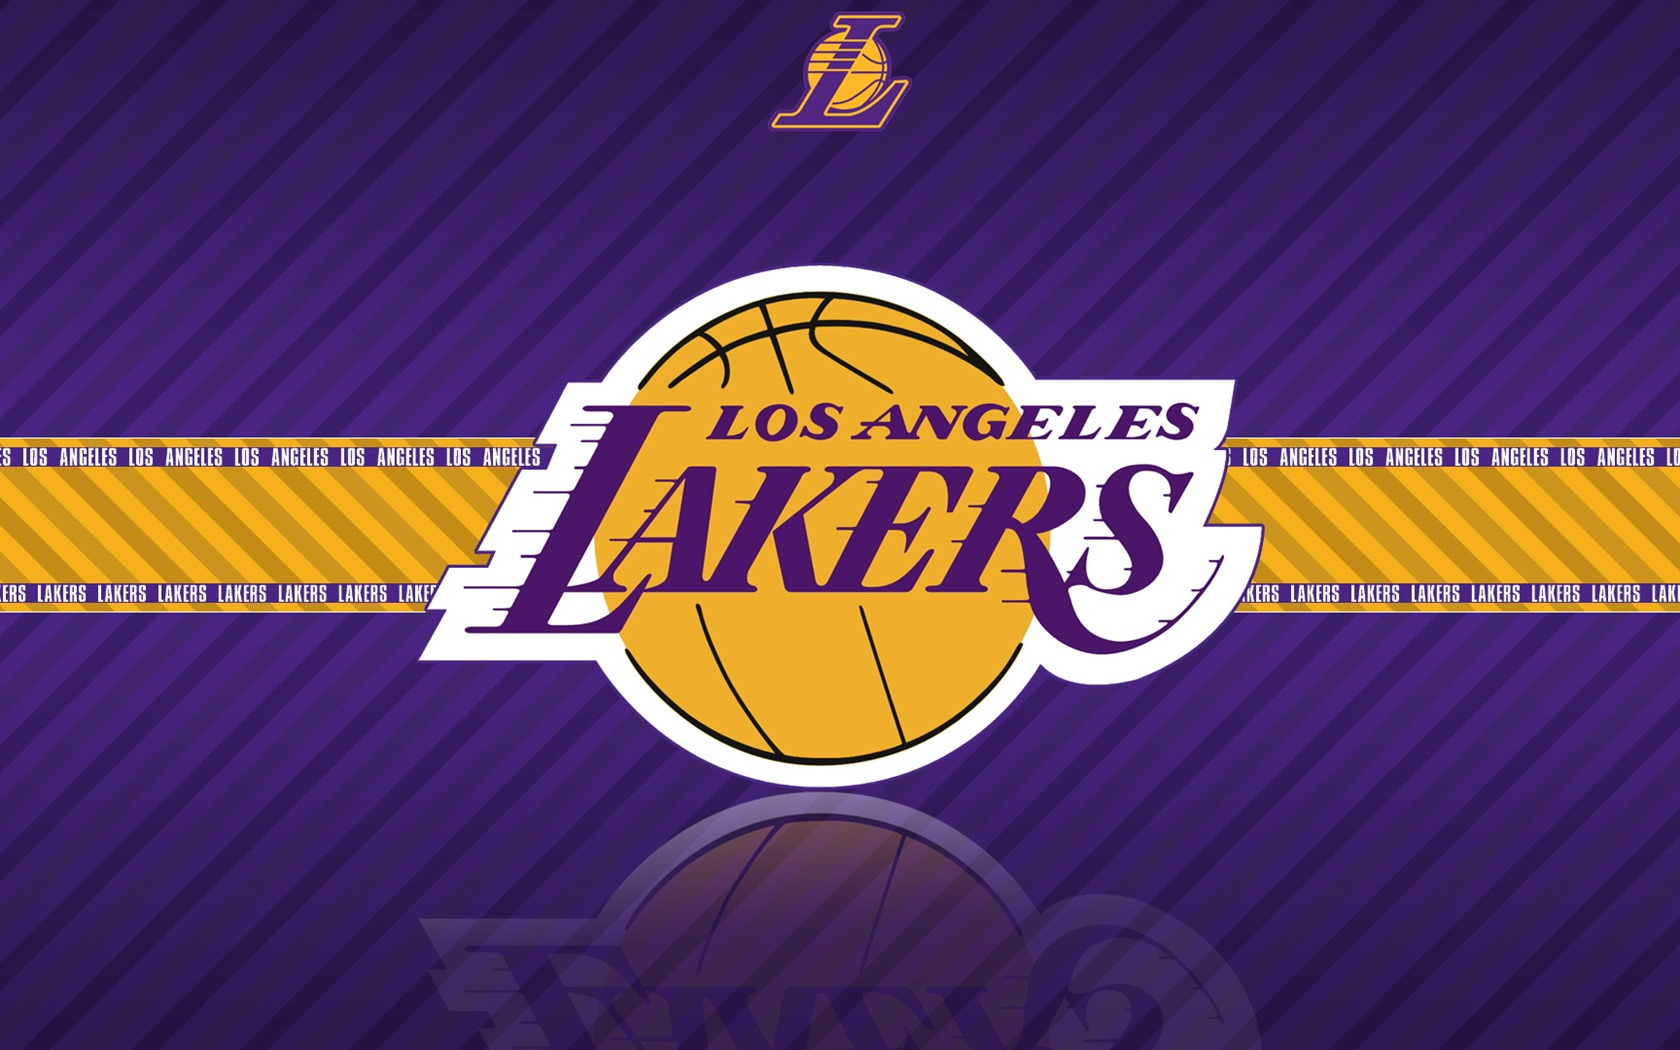 39+ Lakers Logo Wallpaper on WallpaperSafari